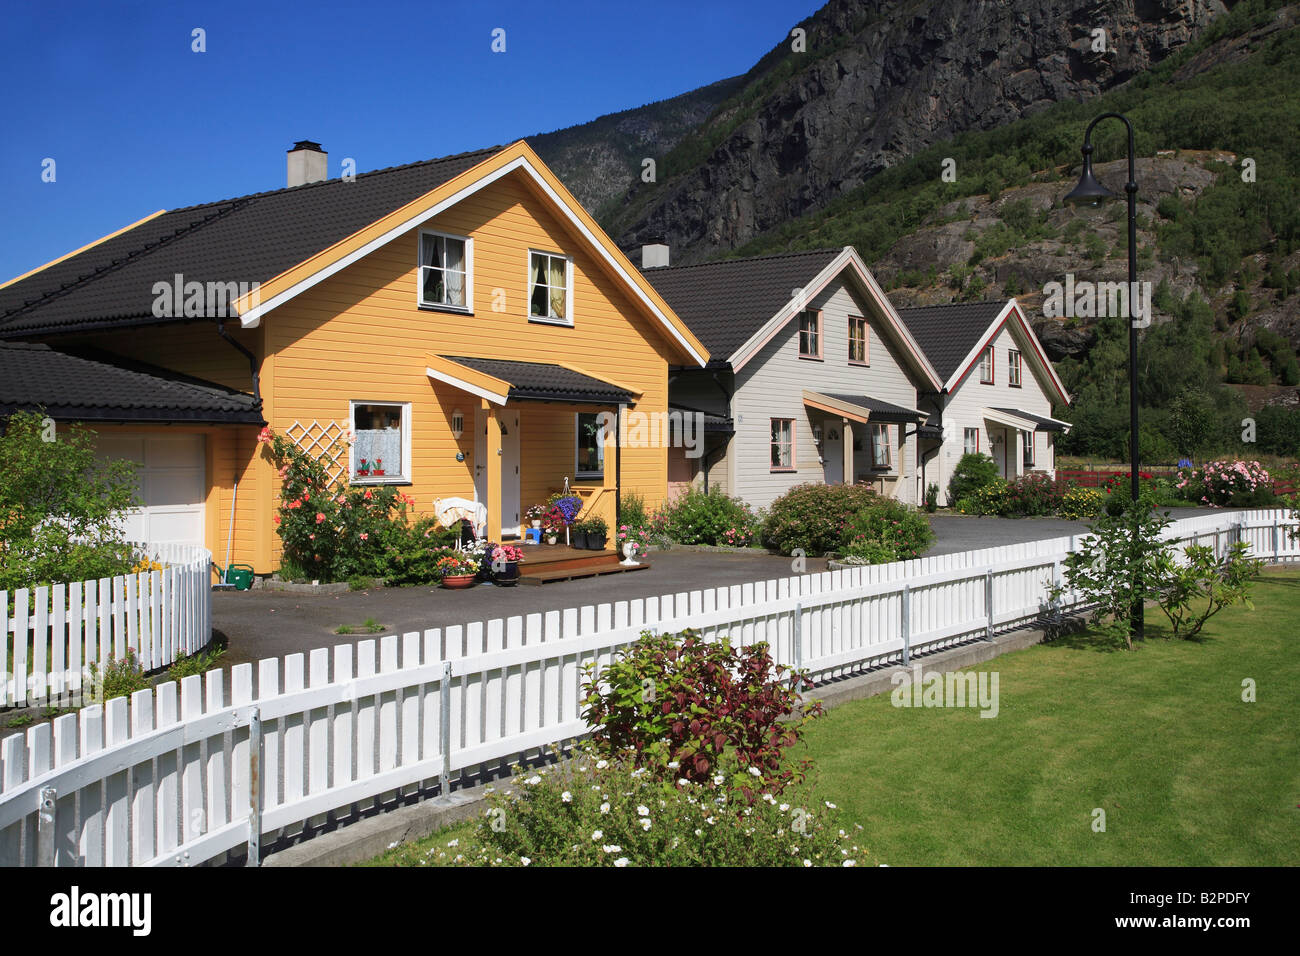 Norway Laerdal typical country houses - Stock Image